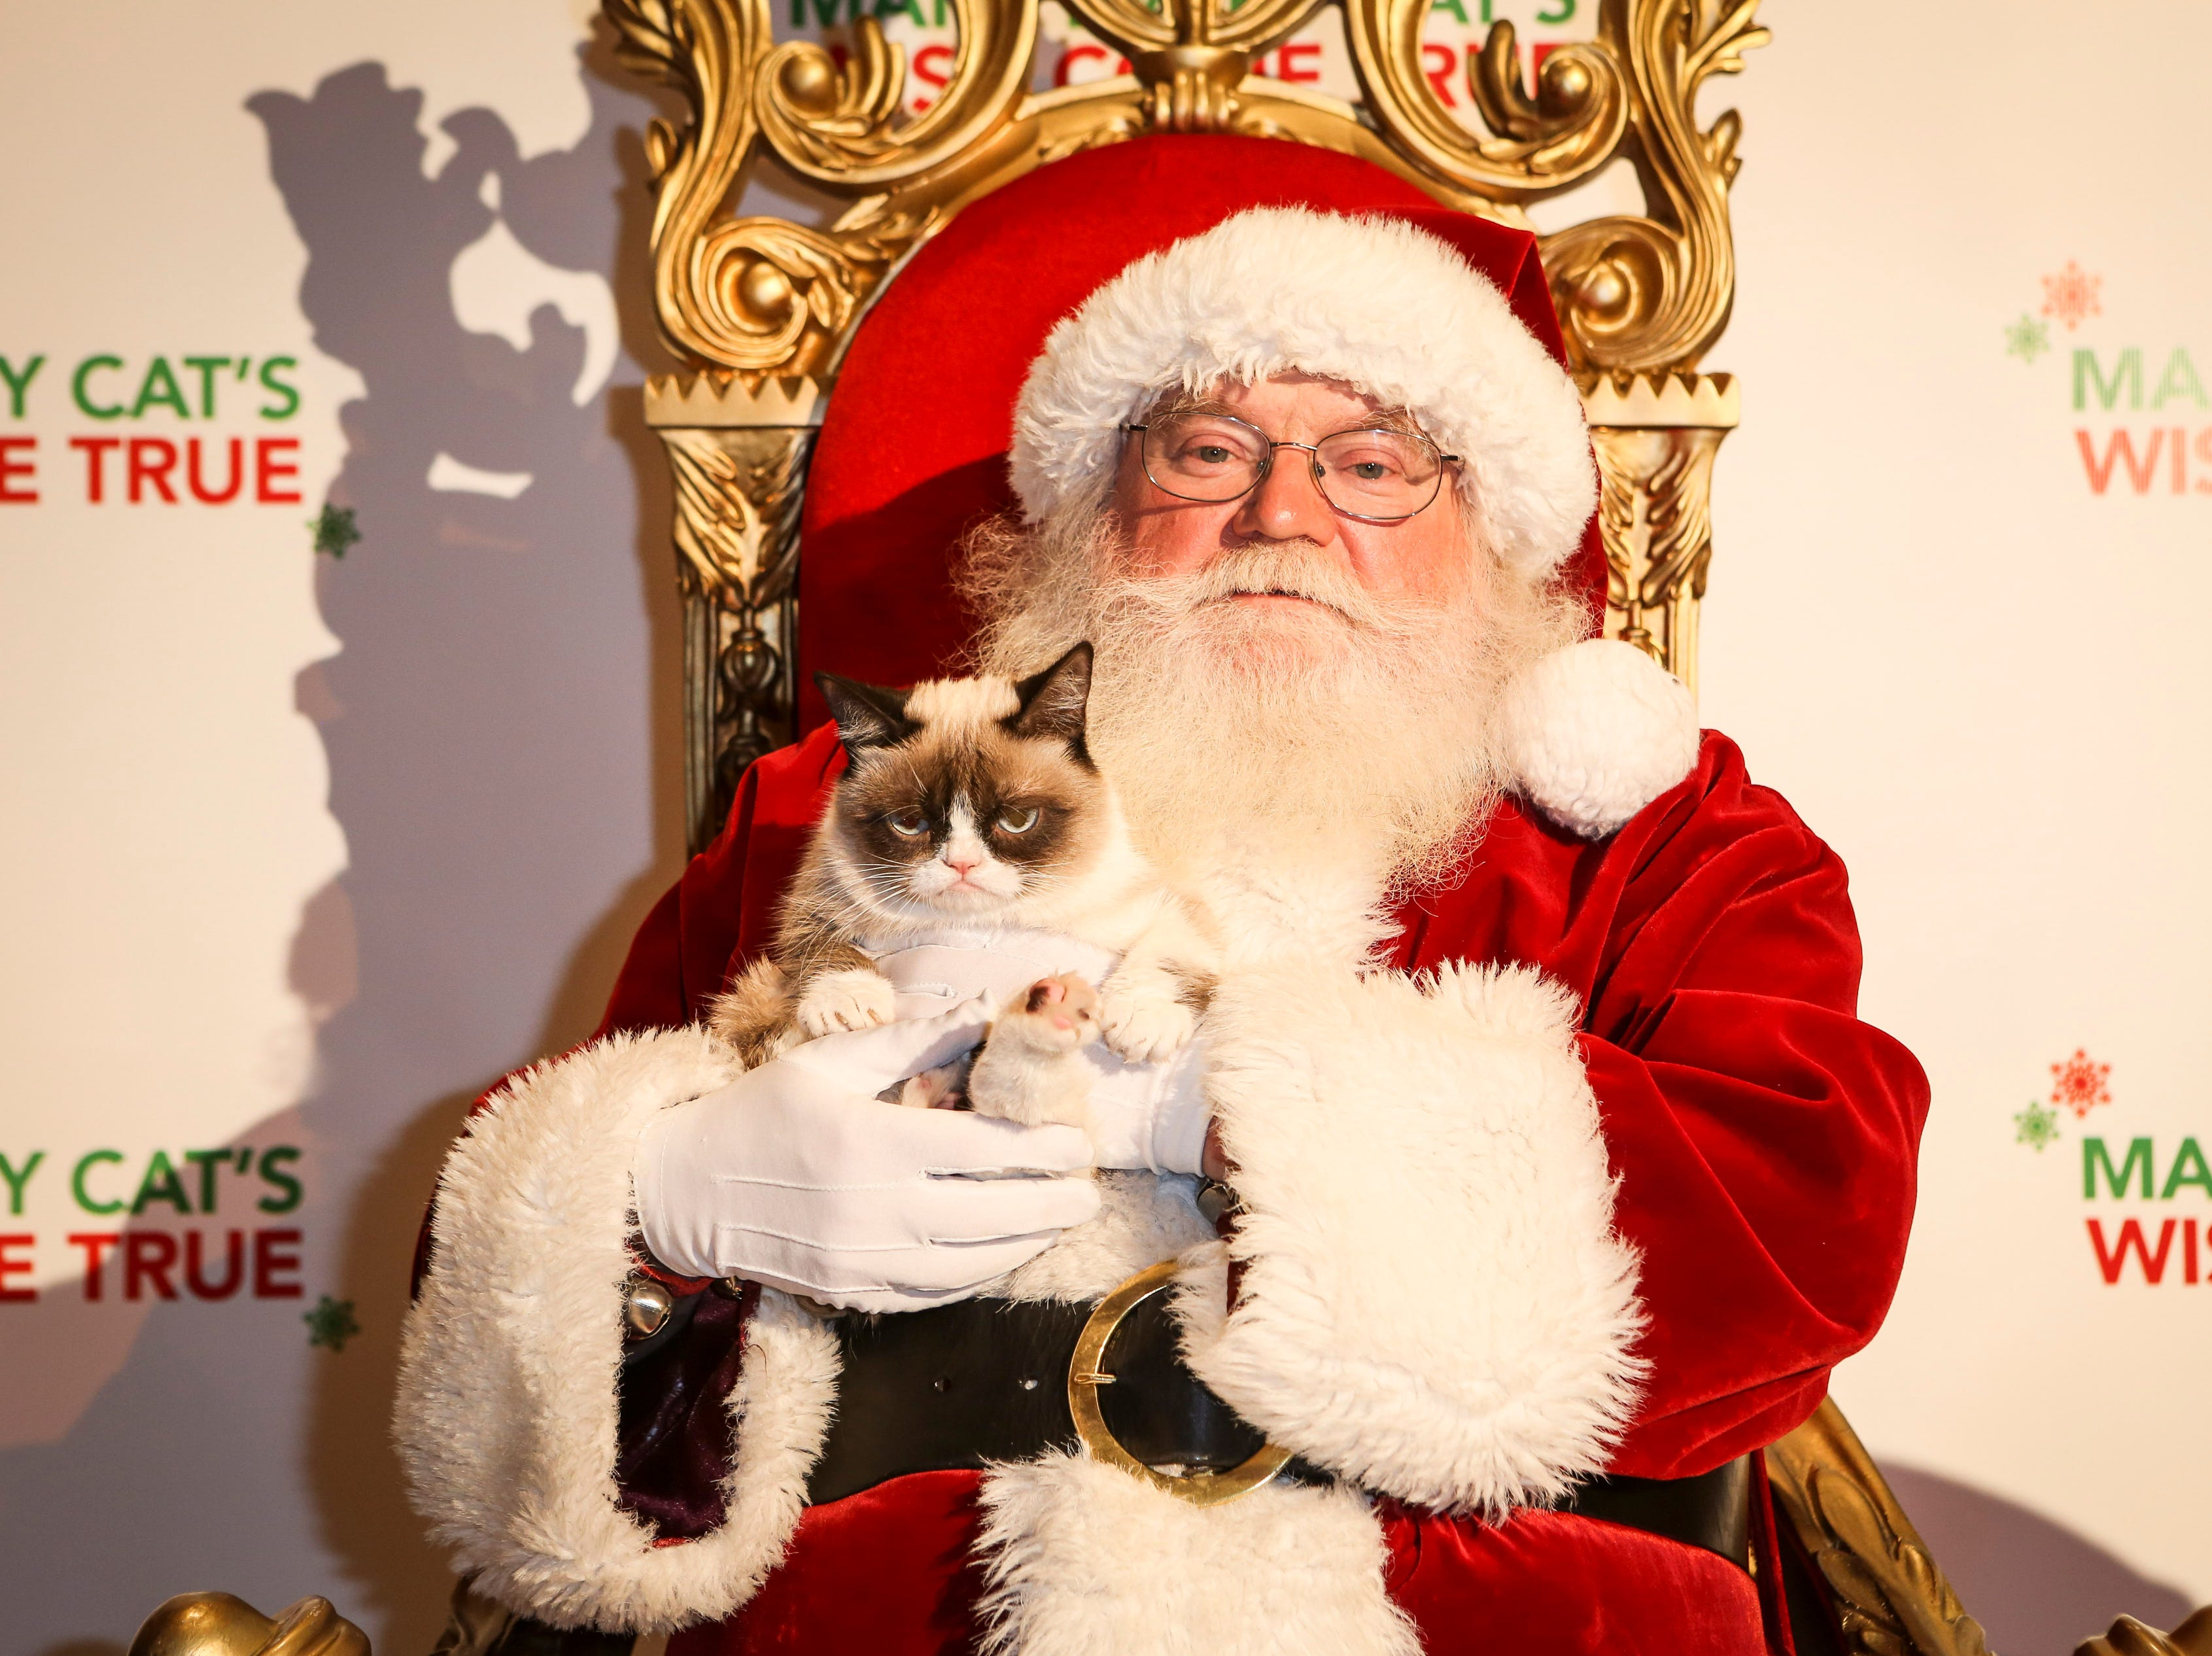 IMAGE DISTRIBUTED FOR FRISKIES - Friskies ìspokescatî Grumpy Cat sits on Santaís lap at the world premiere event to debut the first-ever holiday music video ìHard to Be a Cat at Christmasî supporting the cause of wet cat food for all cats this holiday season, Tuesday, Dec. 10, 2013, at Capitol Records in Los Angeles. The video is available at www.friskies.com/holiday.  (Bret Hartman/AP Images for Friskies) ORG XMIT: CPANY205